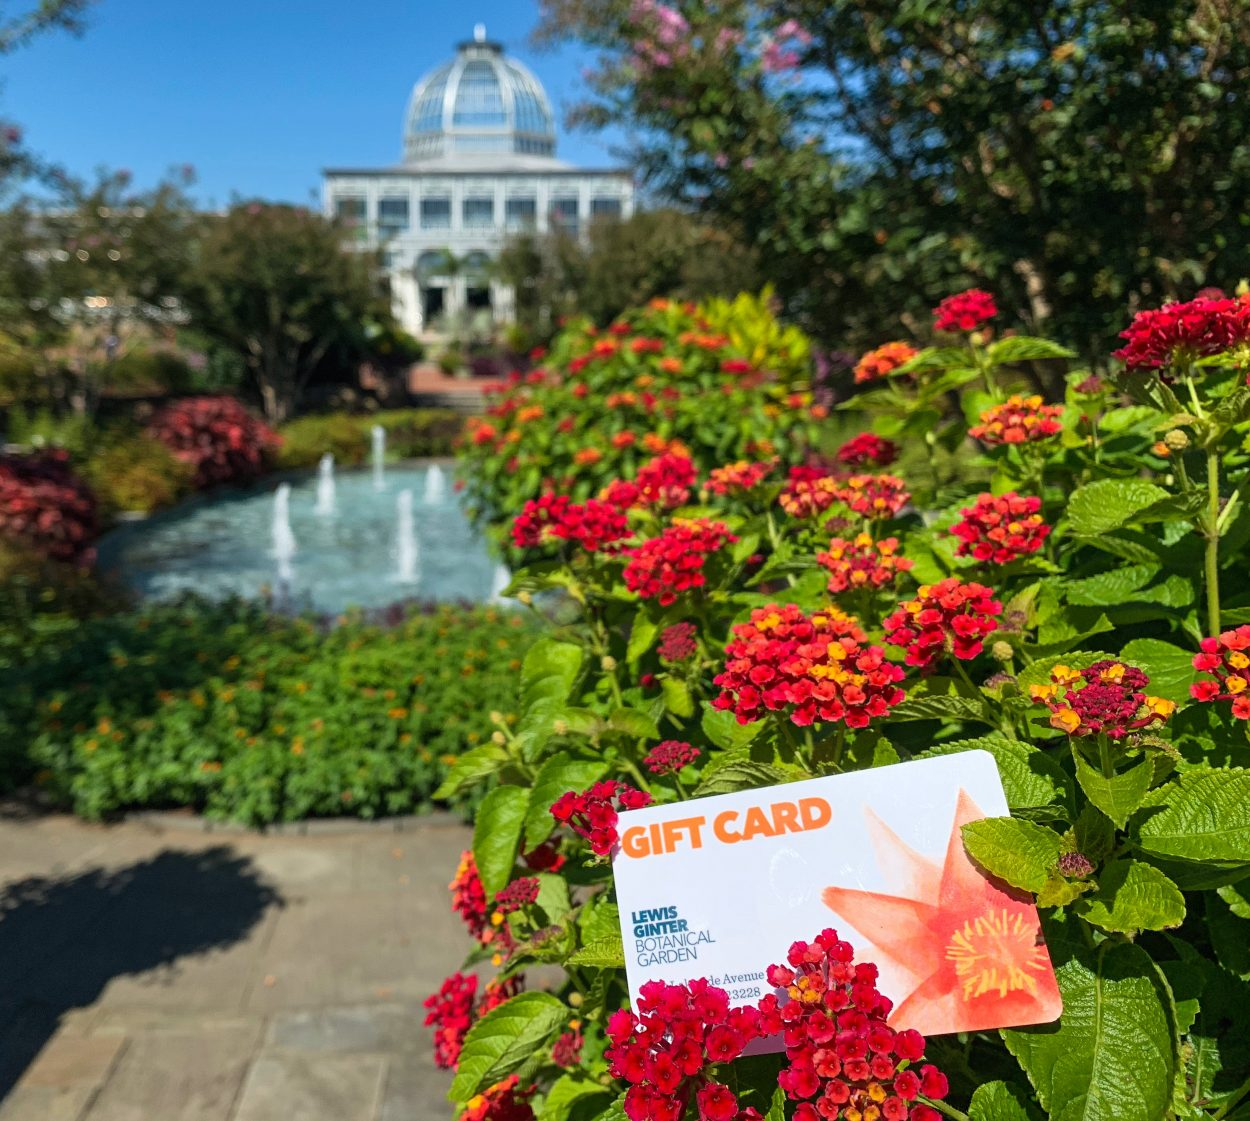 Gift card for Lewis Ginter Botanical Garden